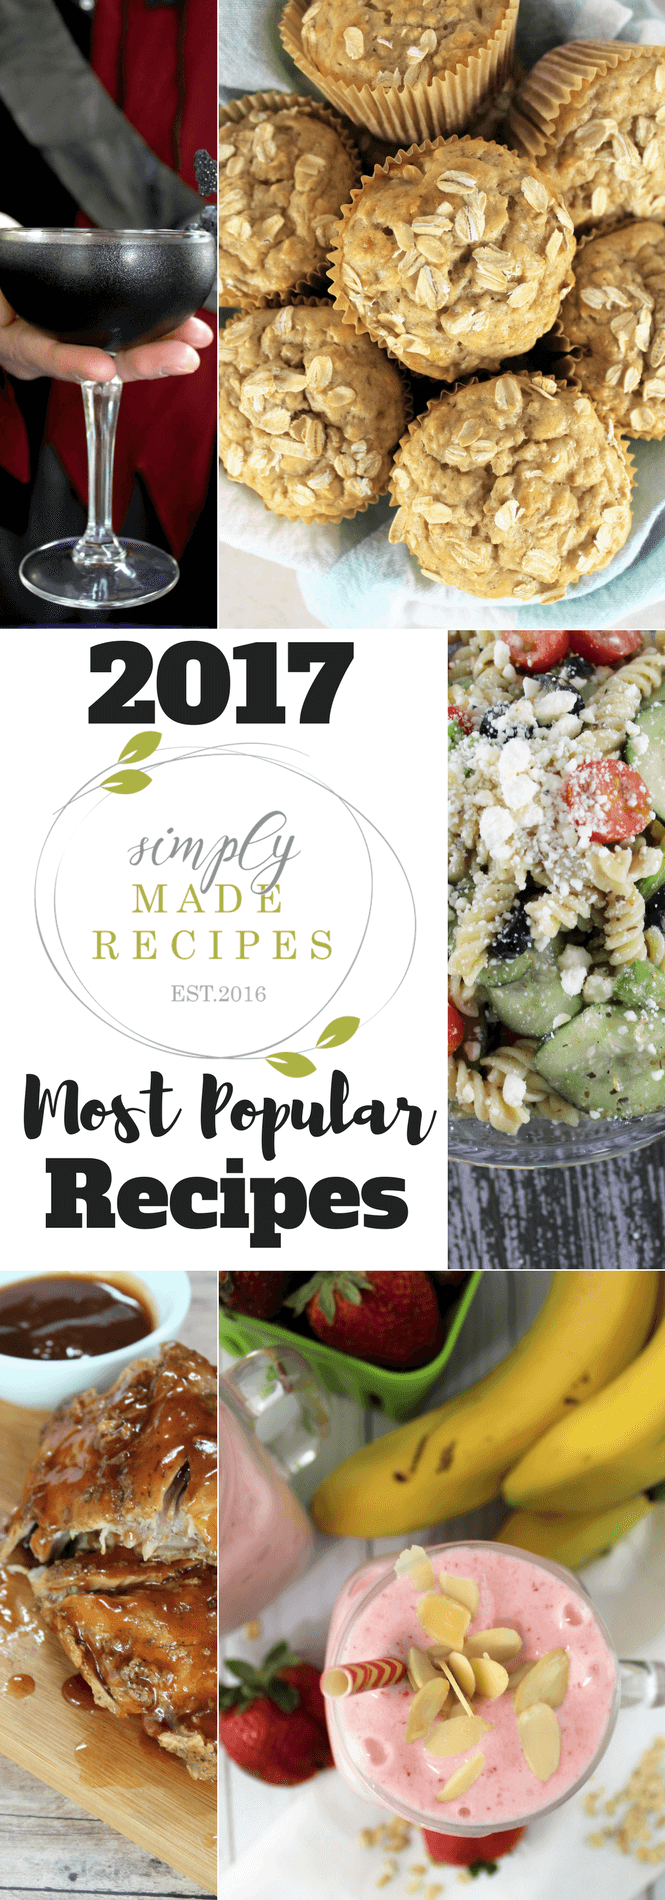 As the year comes to a close, we are sharing Simply Made Recipes Most Popular of 2017! Here are the 10 recipes that people just couldn't get enough of.